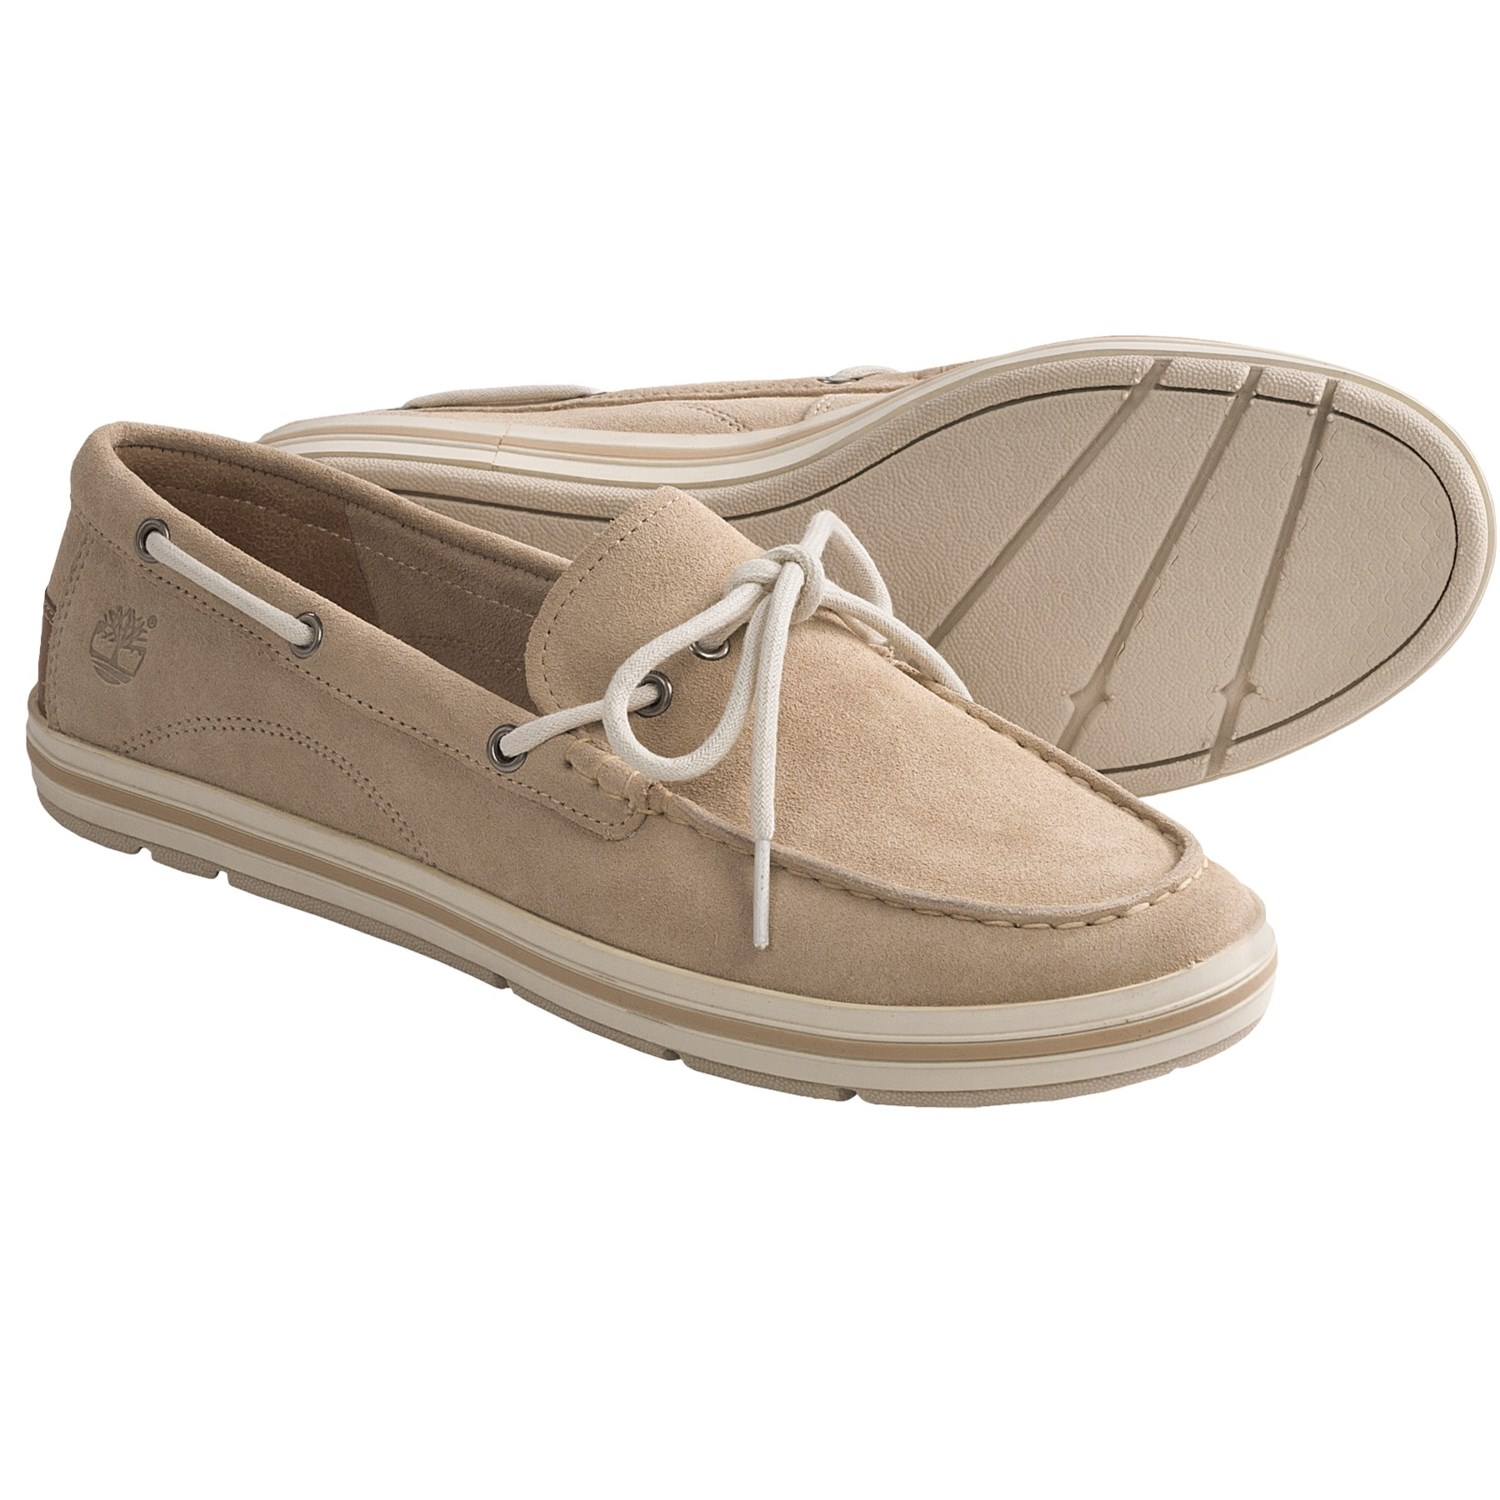 Clarks Spring 2014 Collection | women's boat shoes | spring style